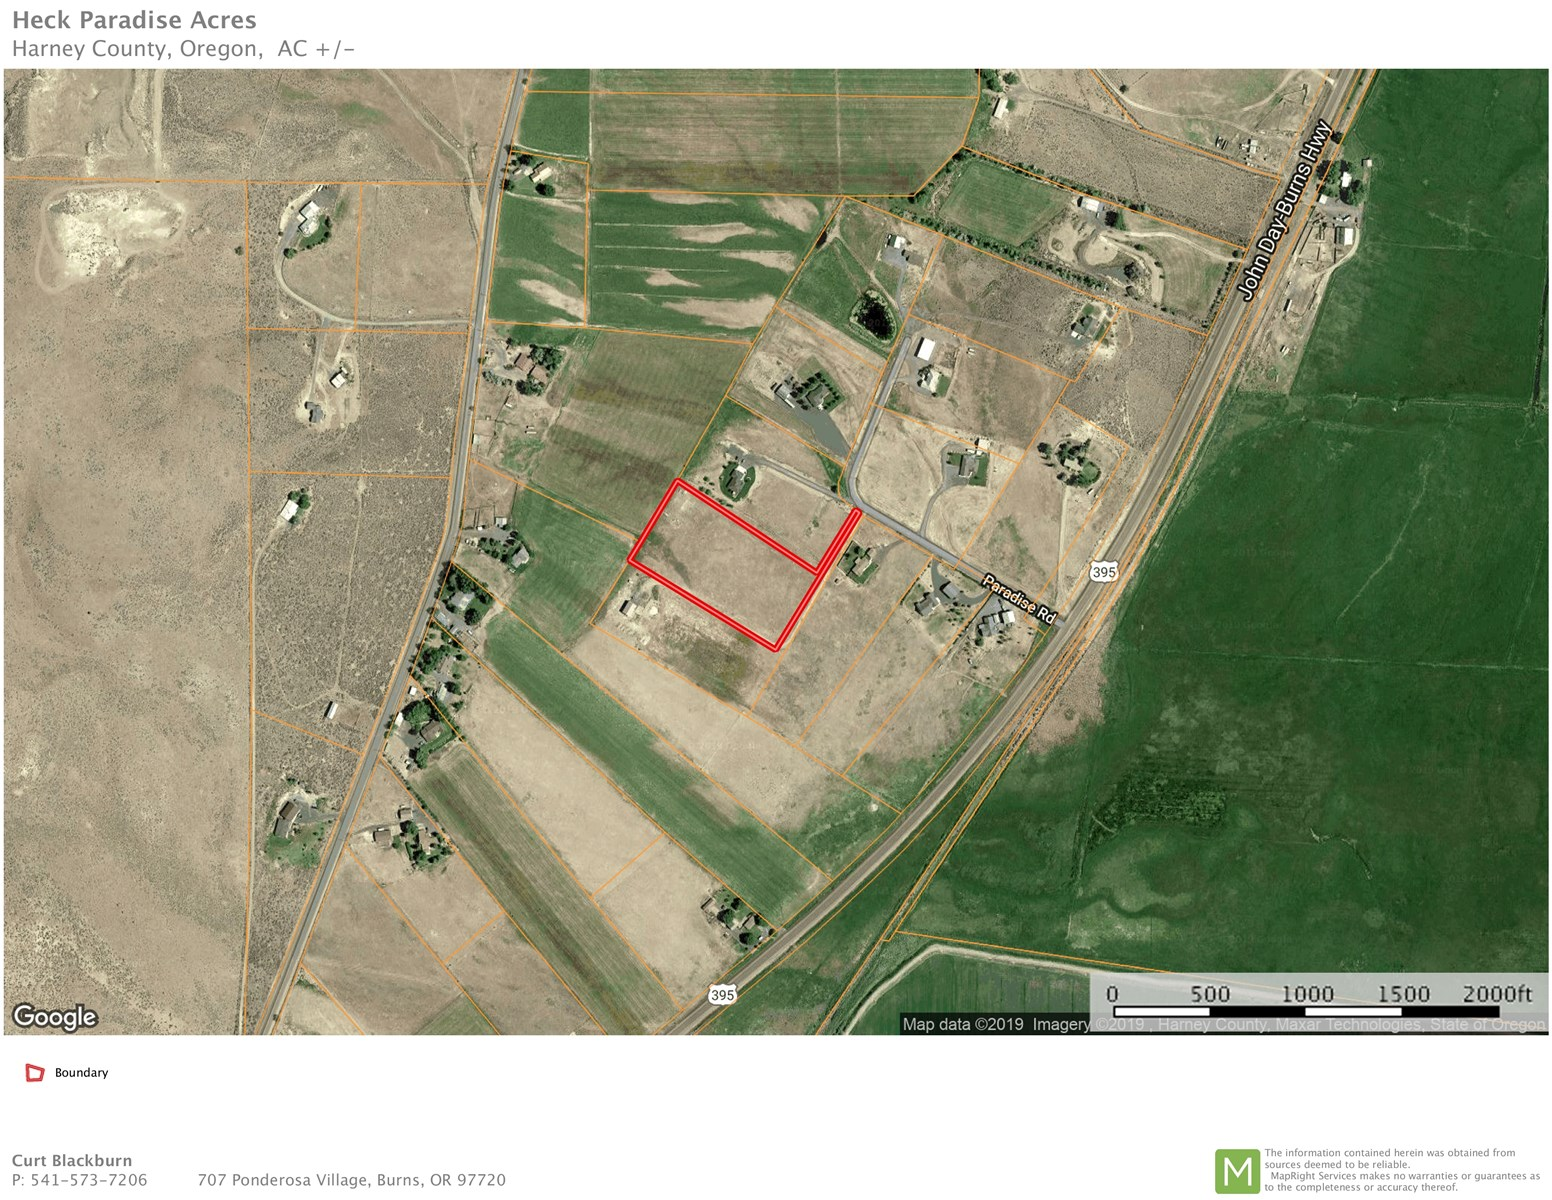 BURNS, OR - 5 ACRES IN PARADISE ACRES - CLOSE TO TOWN